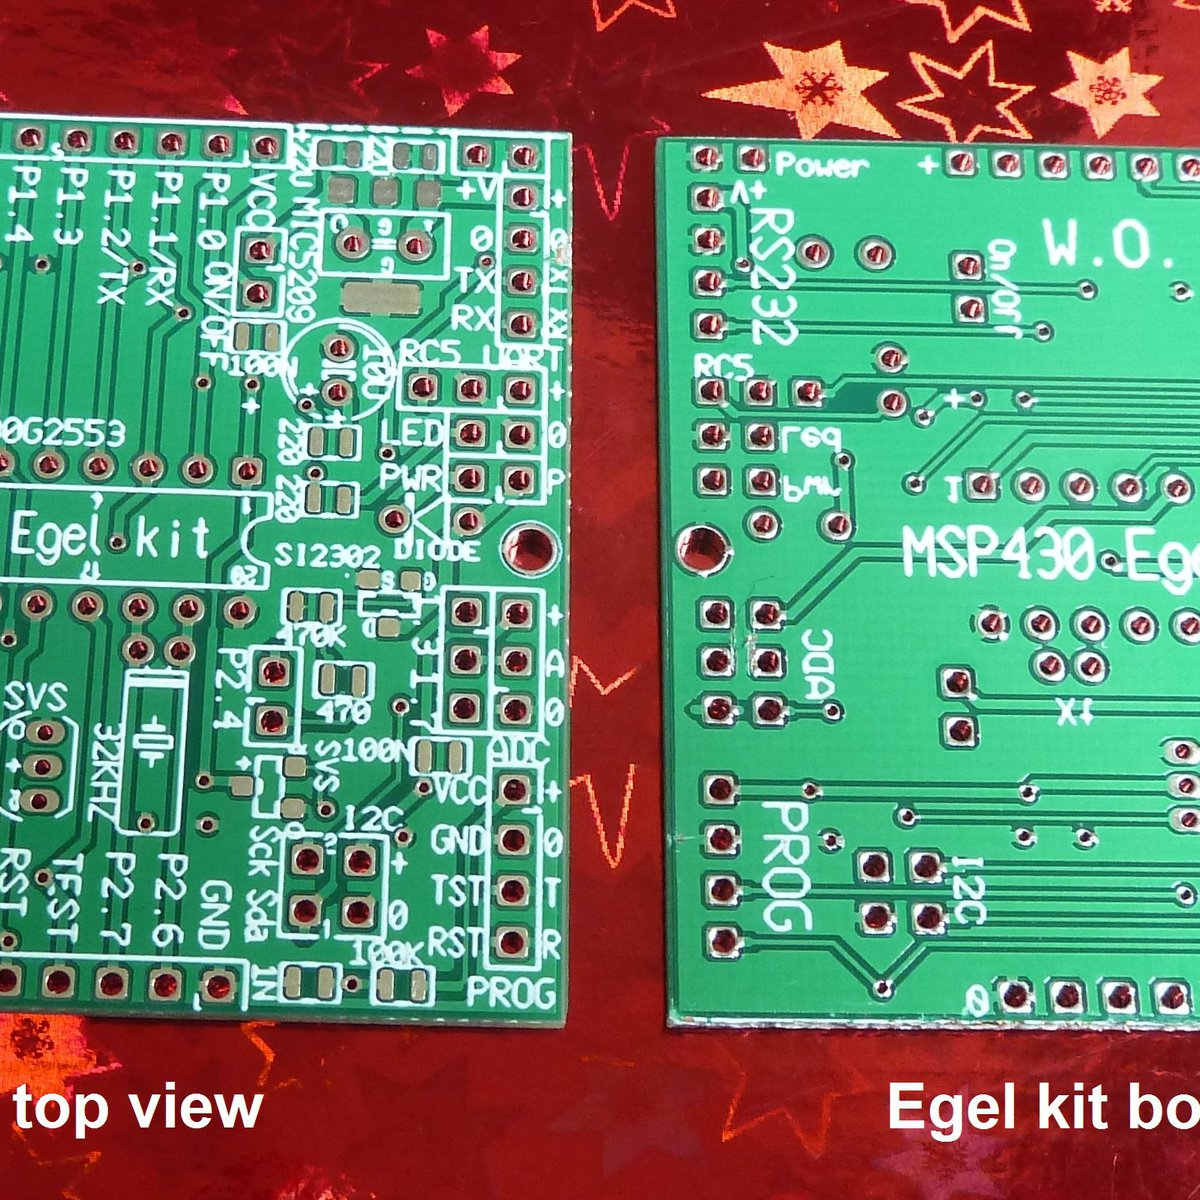 Egel kit board set for MSP430G2553 (no parts!) from